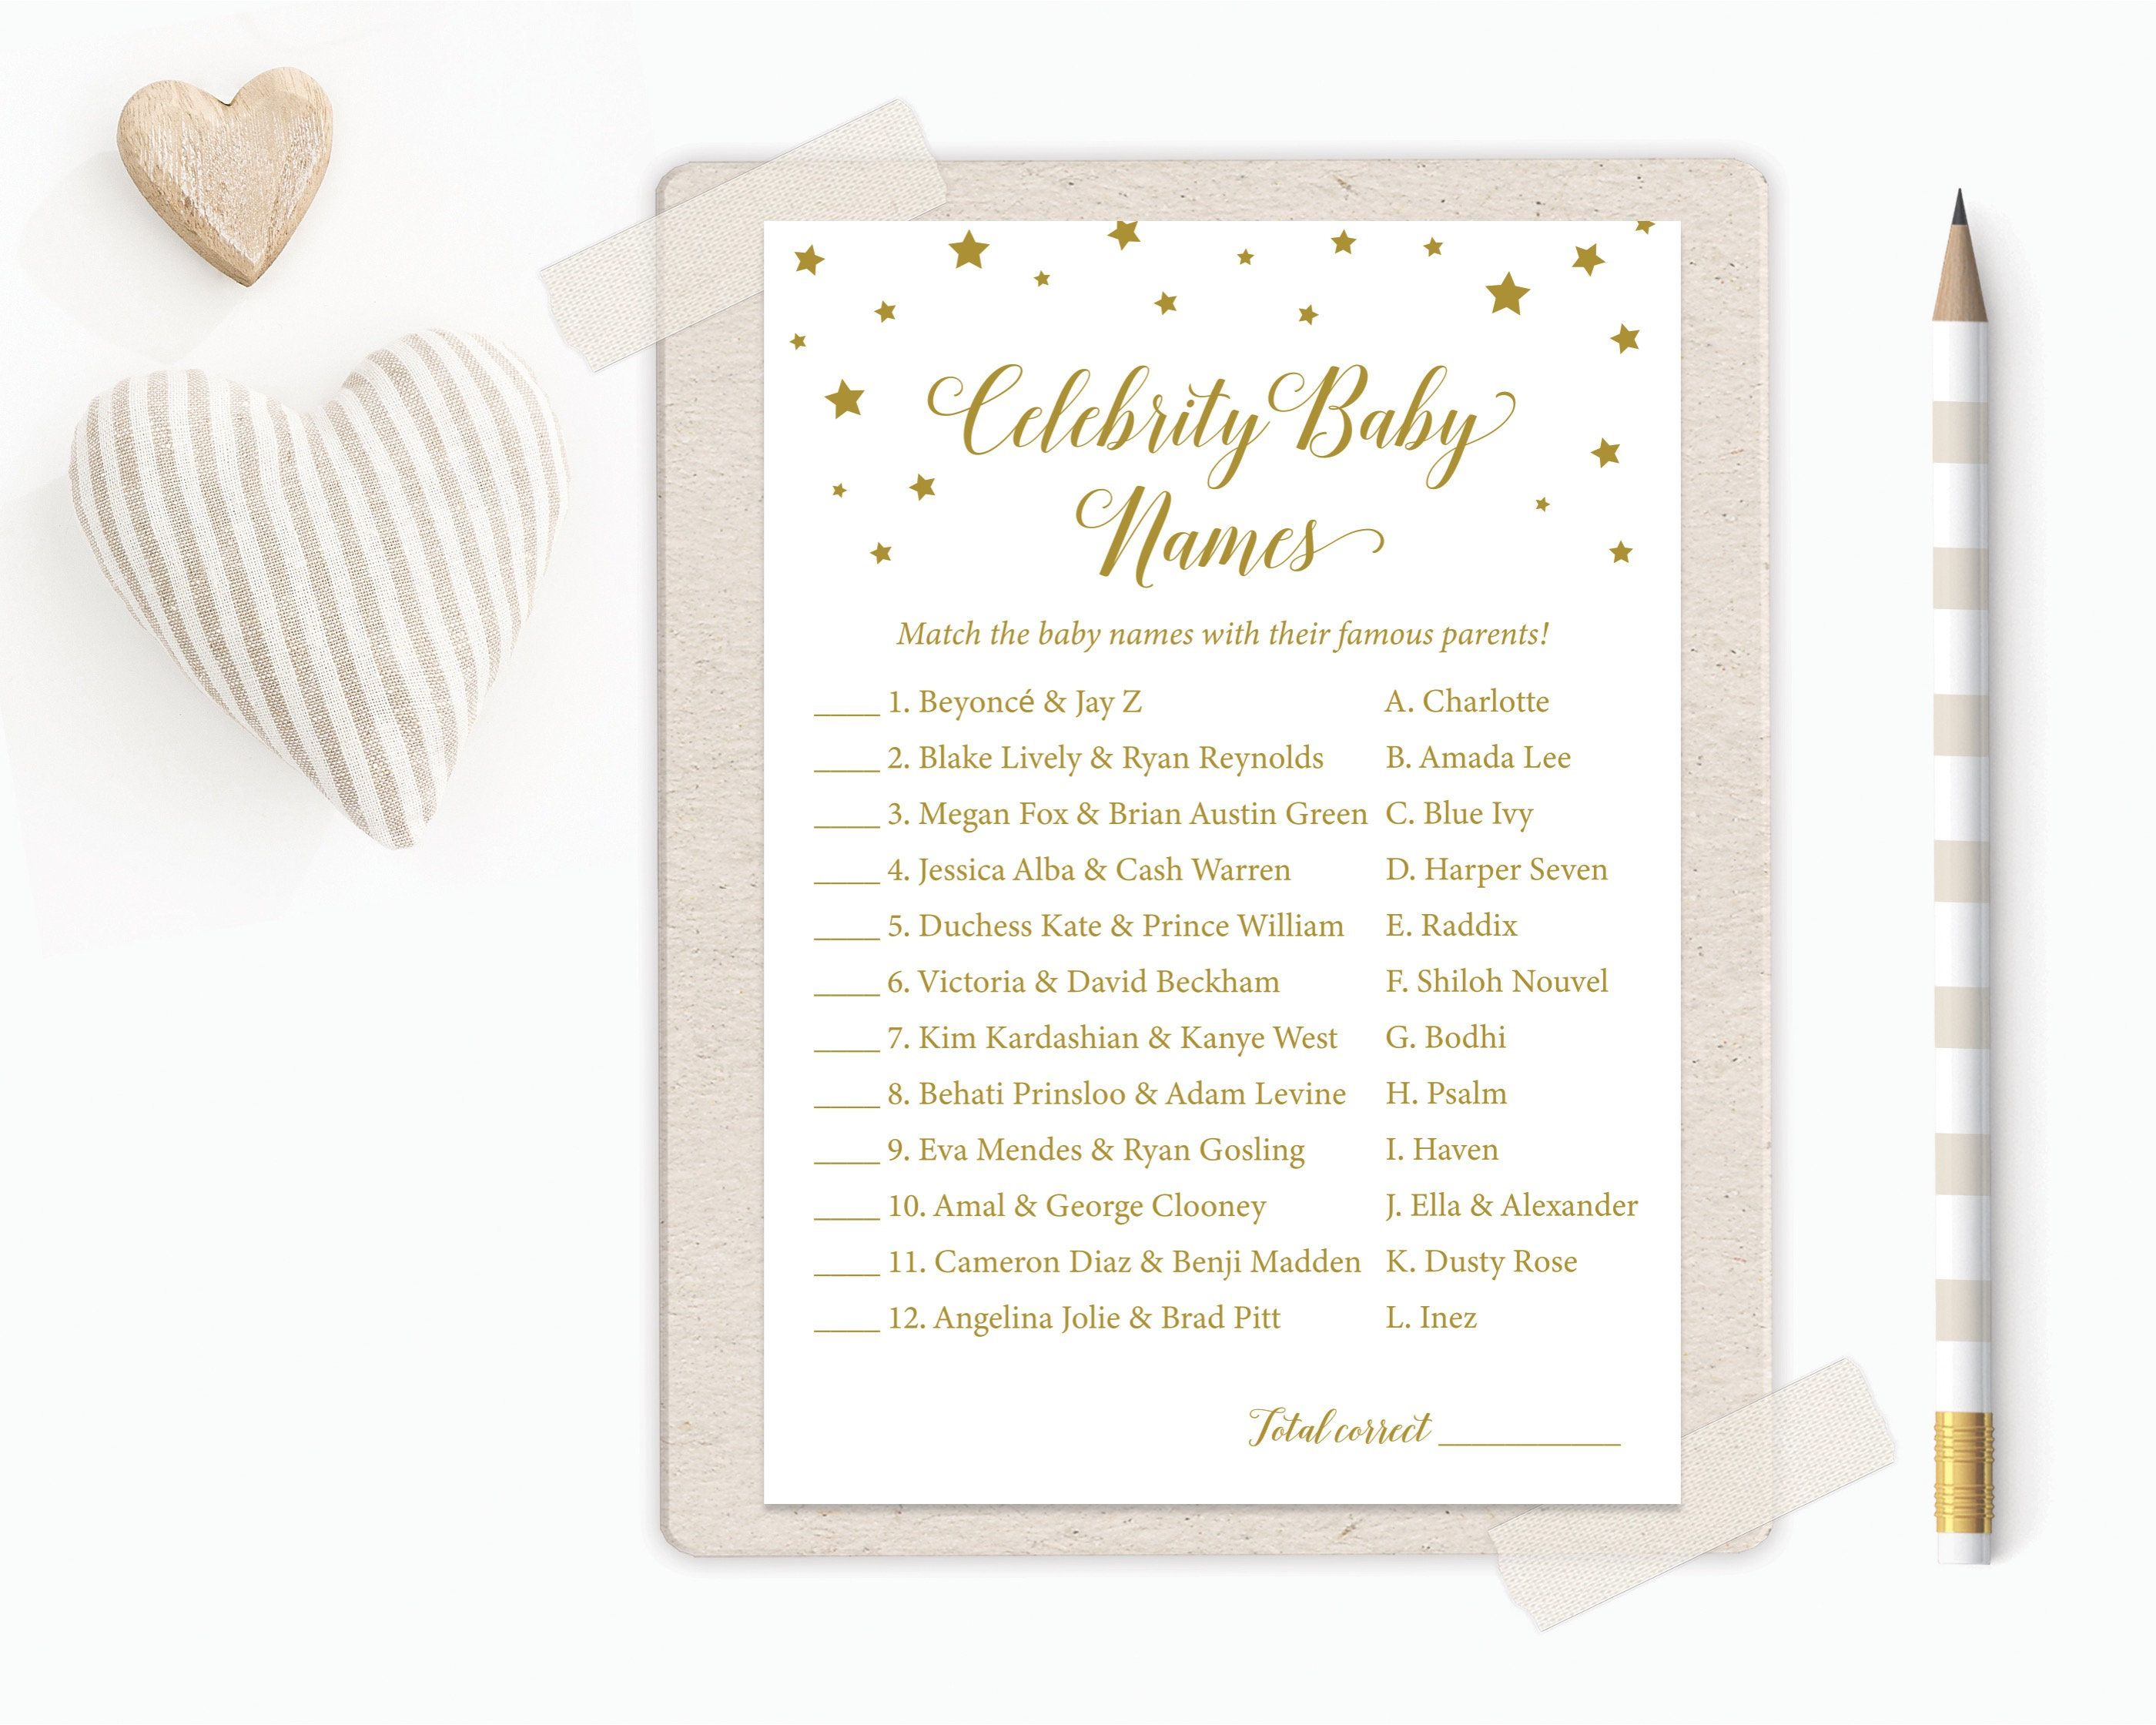 Celebrity Baby Name Game, Celebrity Baby Names, Baby Shower Game Printable, Guess the Celebrity Baby, Baby Shower Games, Baby Shower Game